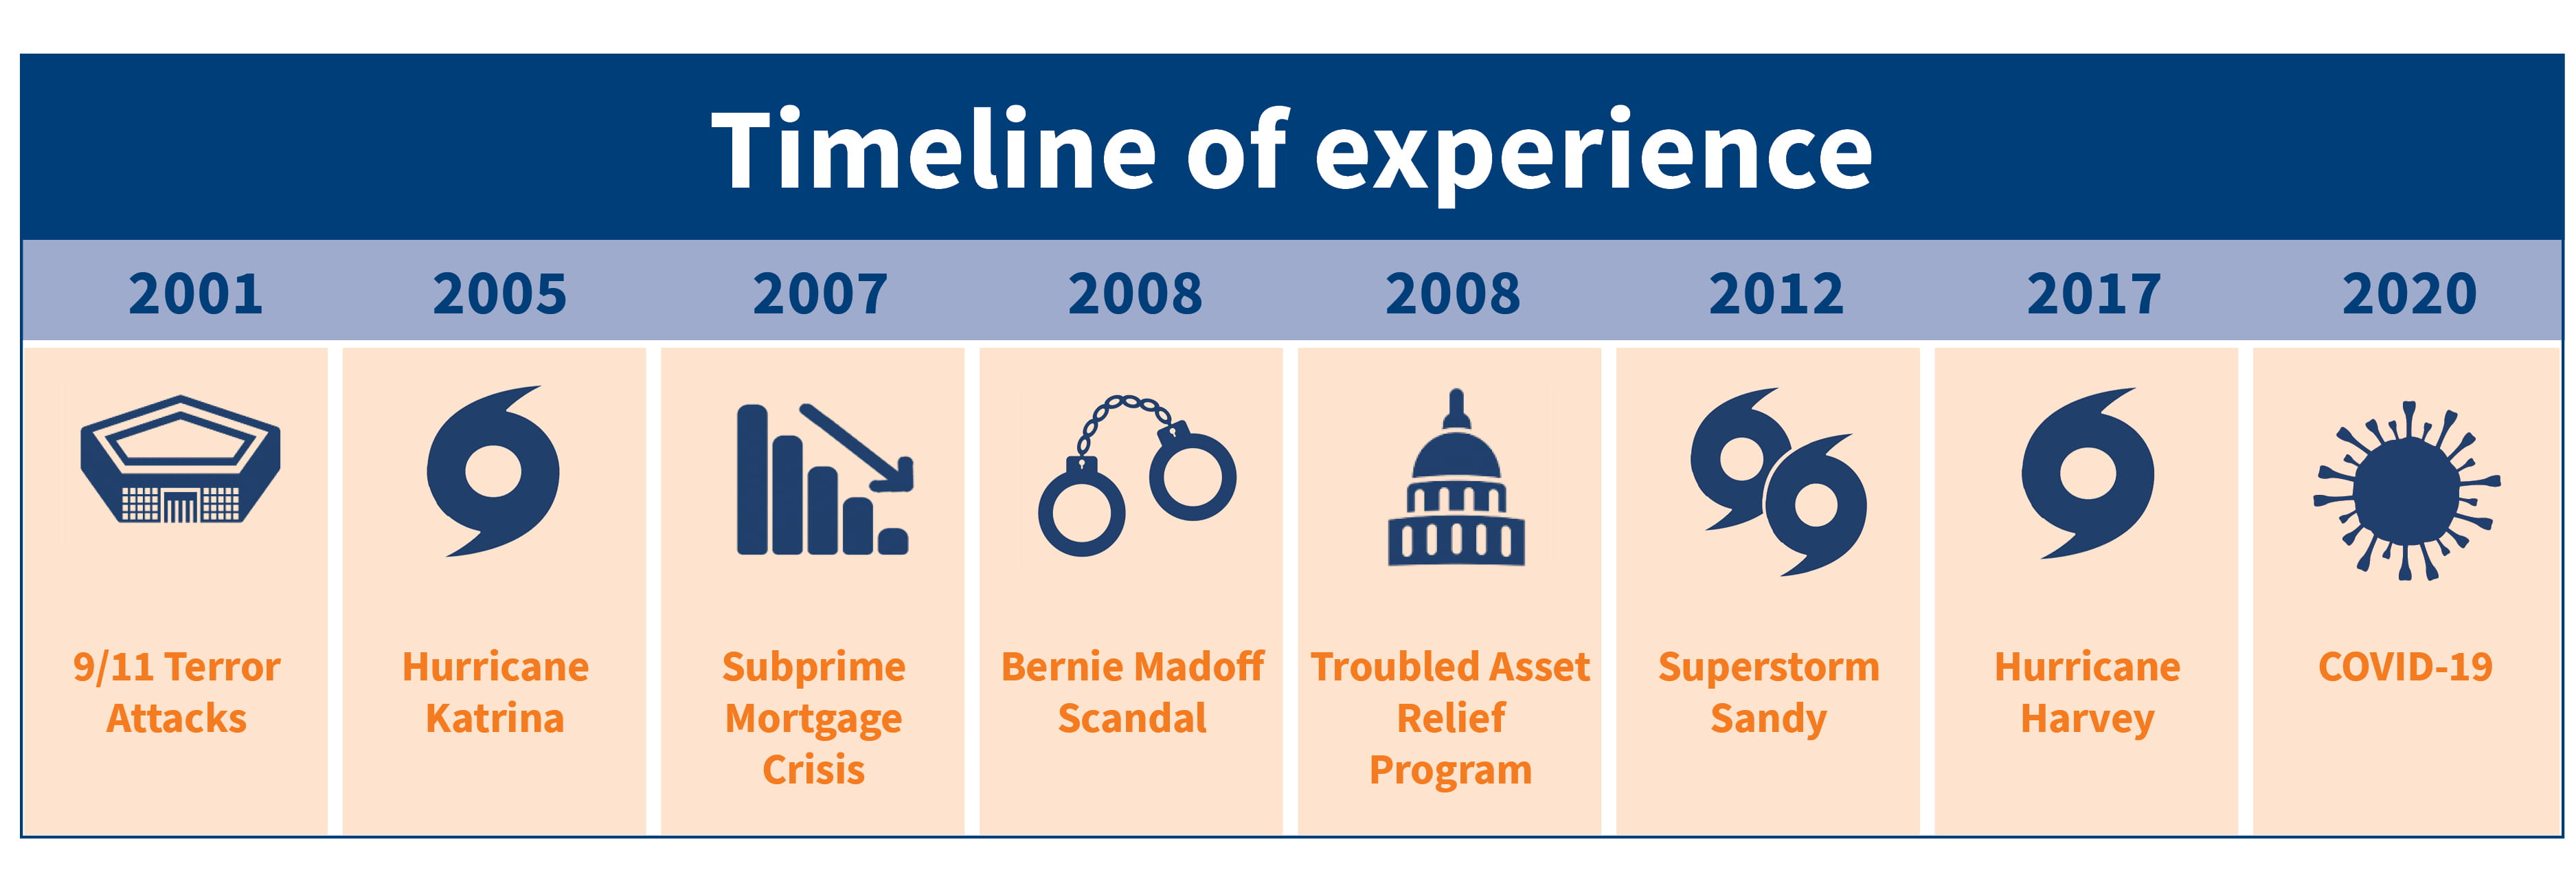 timeline experiences government compliance